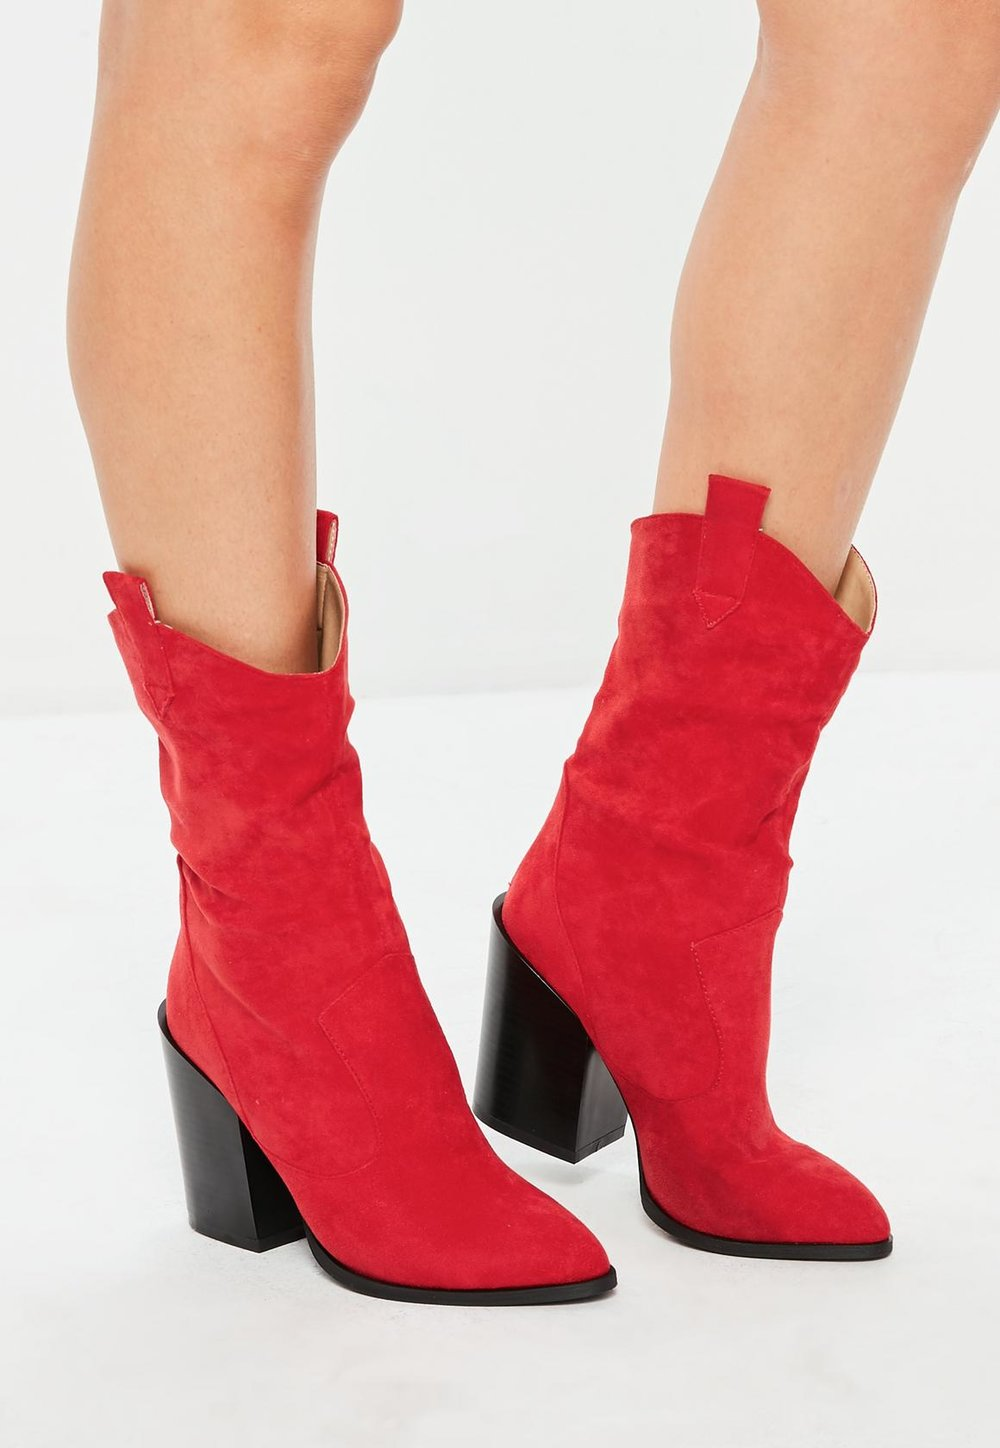 red-mid-height-heeled-western-boots.jpg